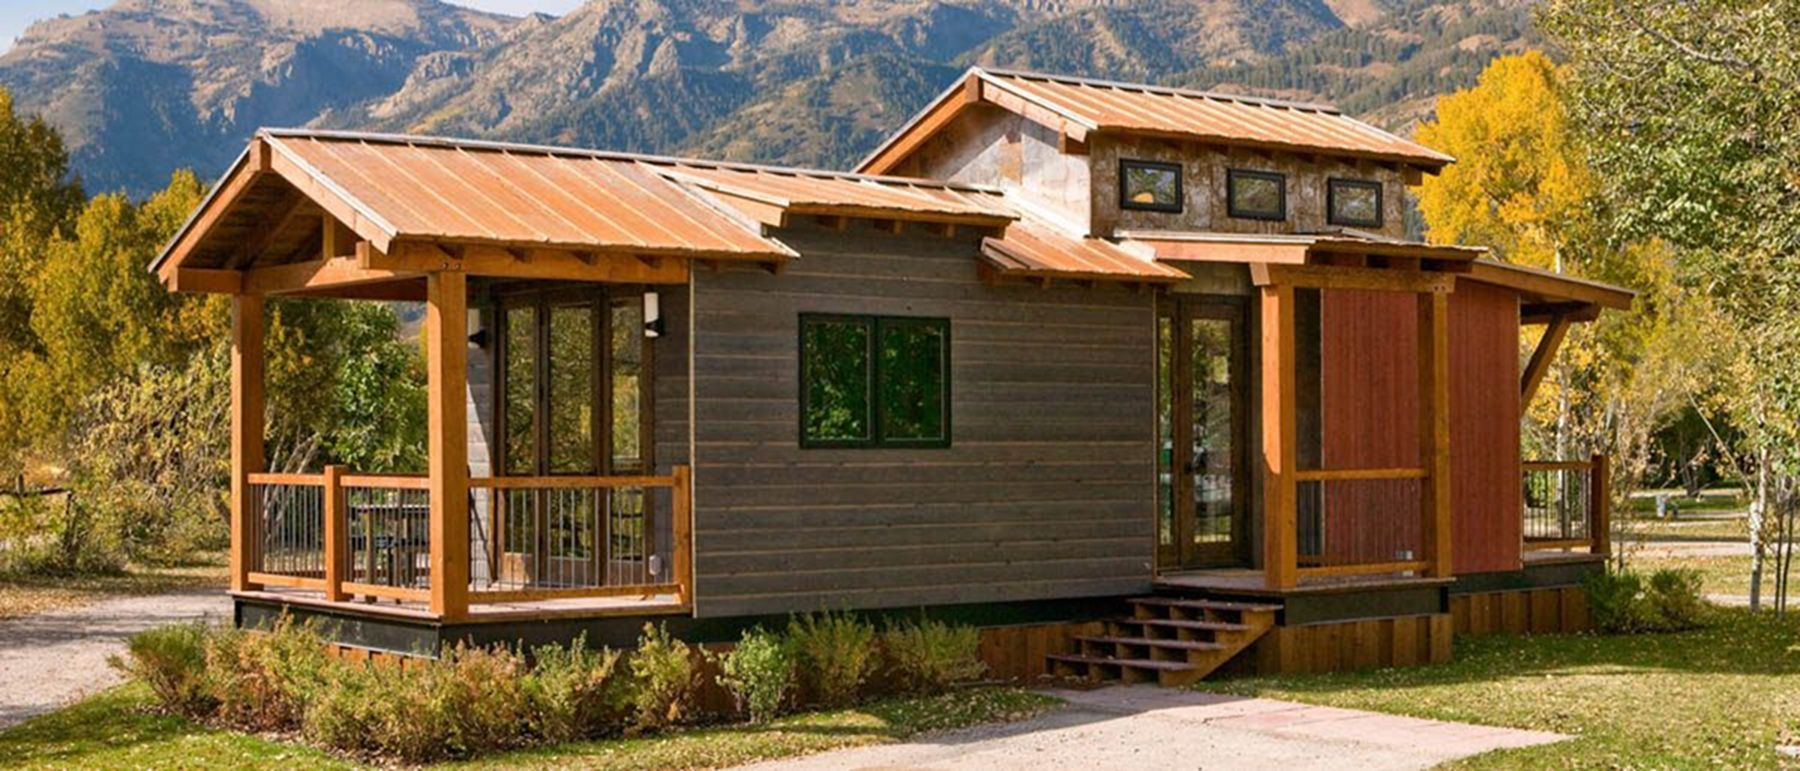 15 The Best Small House Design Ideas For Your Small Harmonious Family Best Small House Designs Small House Design Tiny House Design